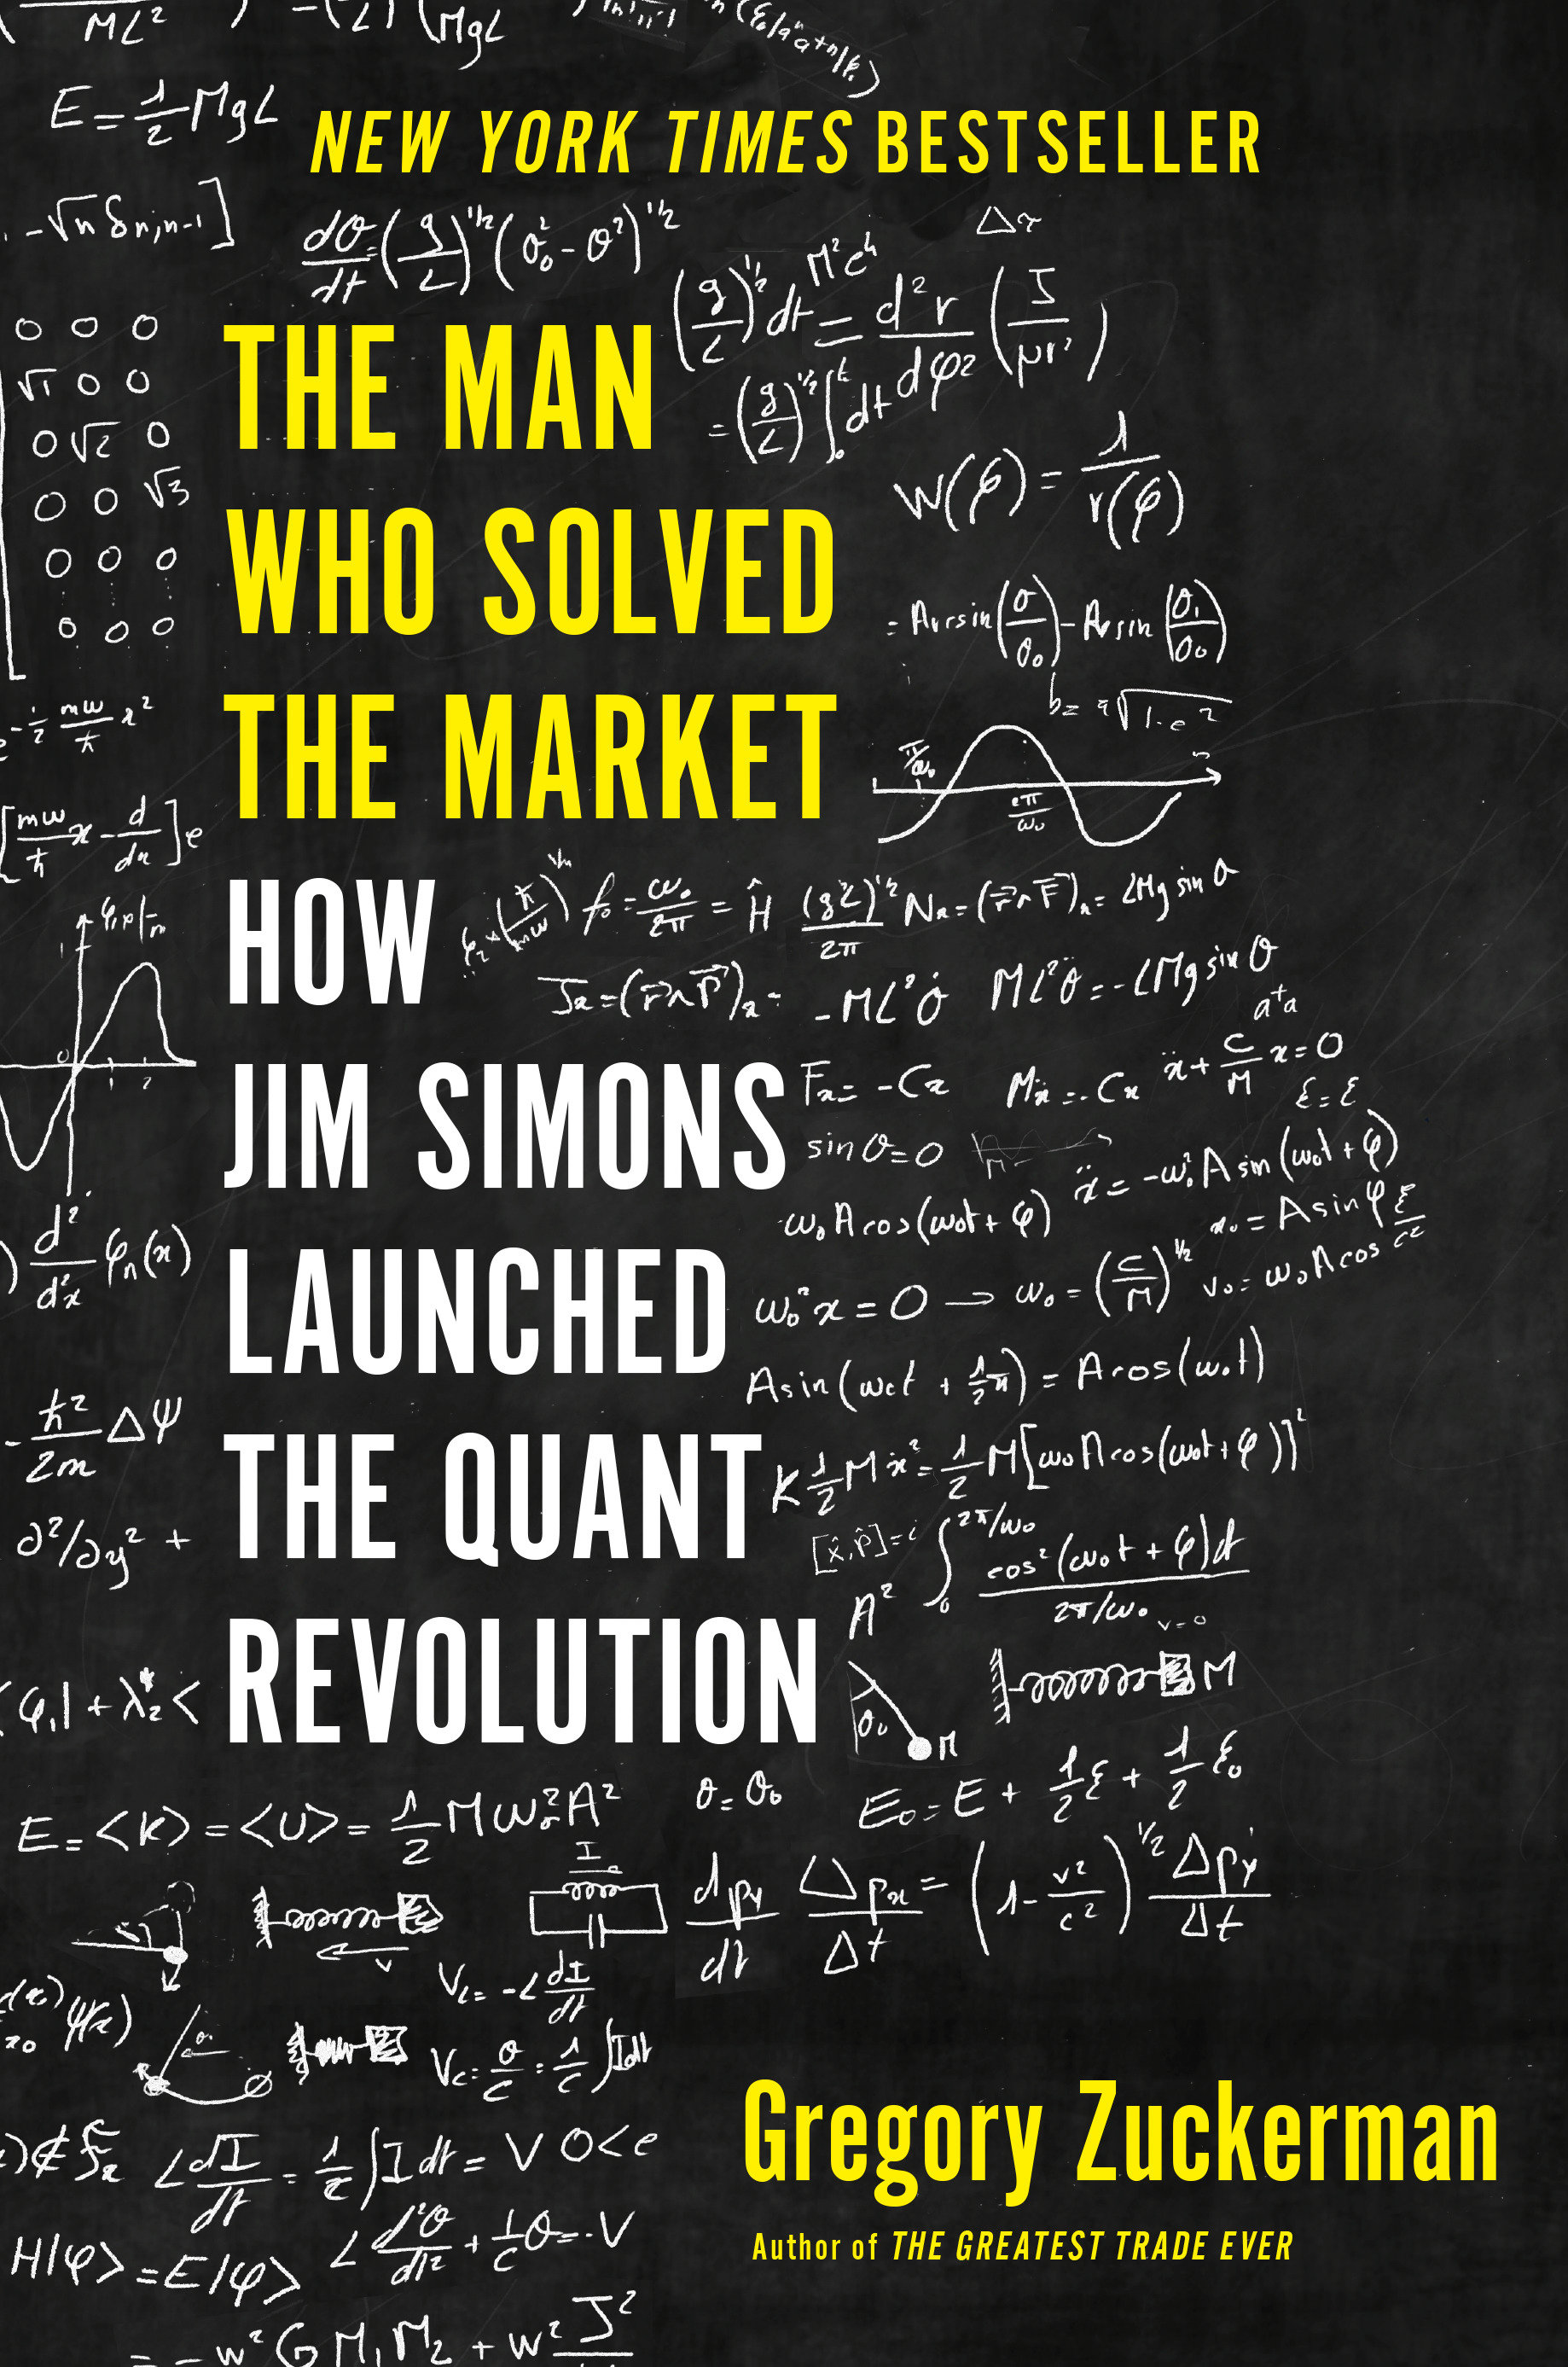 The man who solved the market how Jim Simons launched the quant revolution cover image